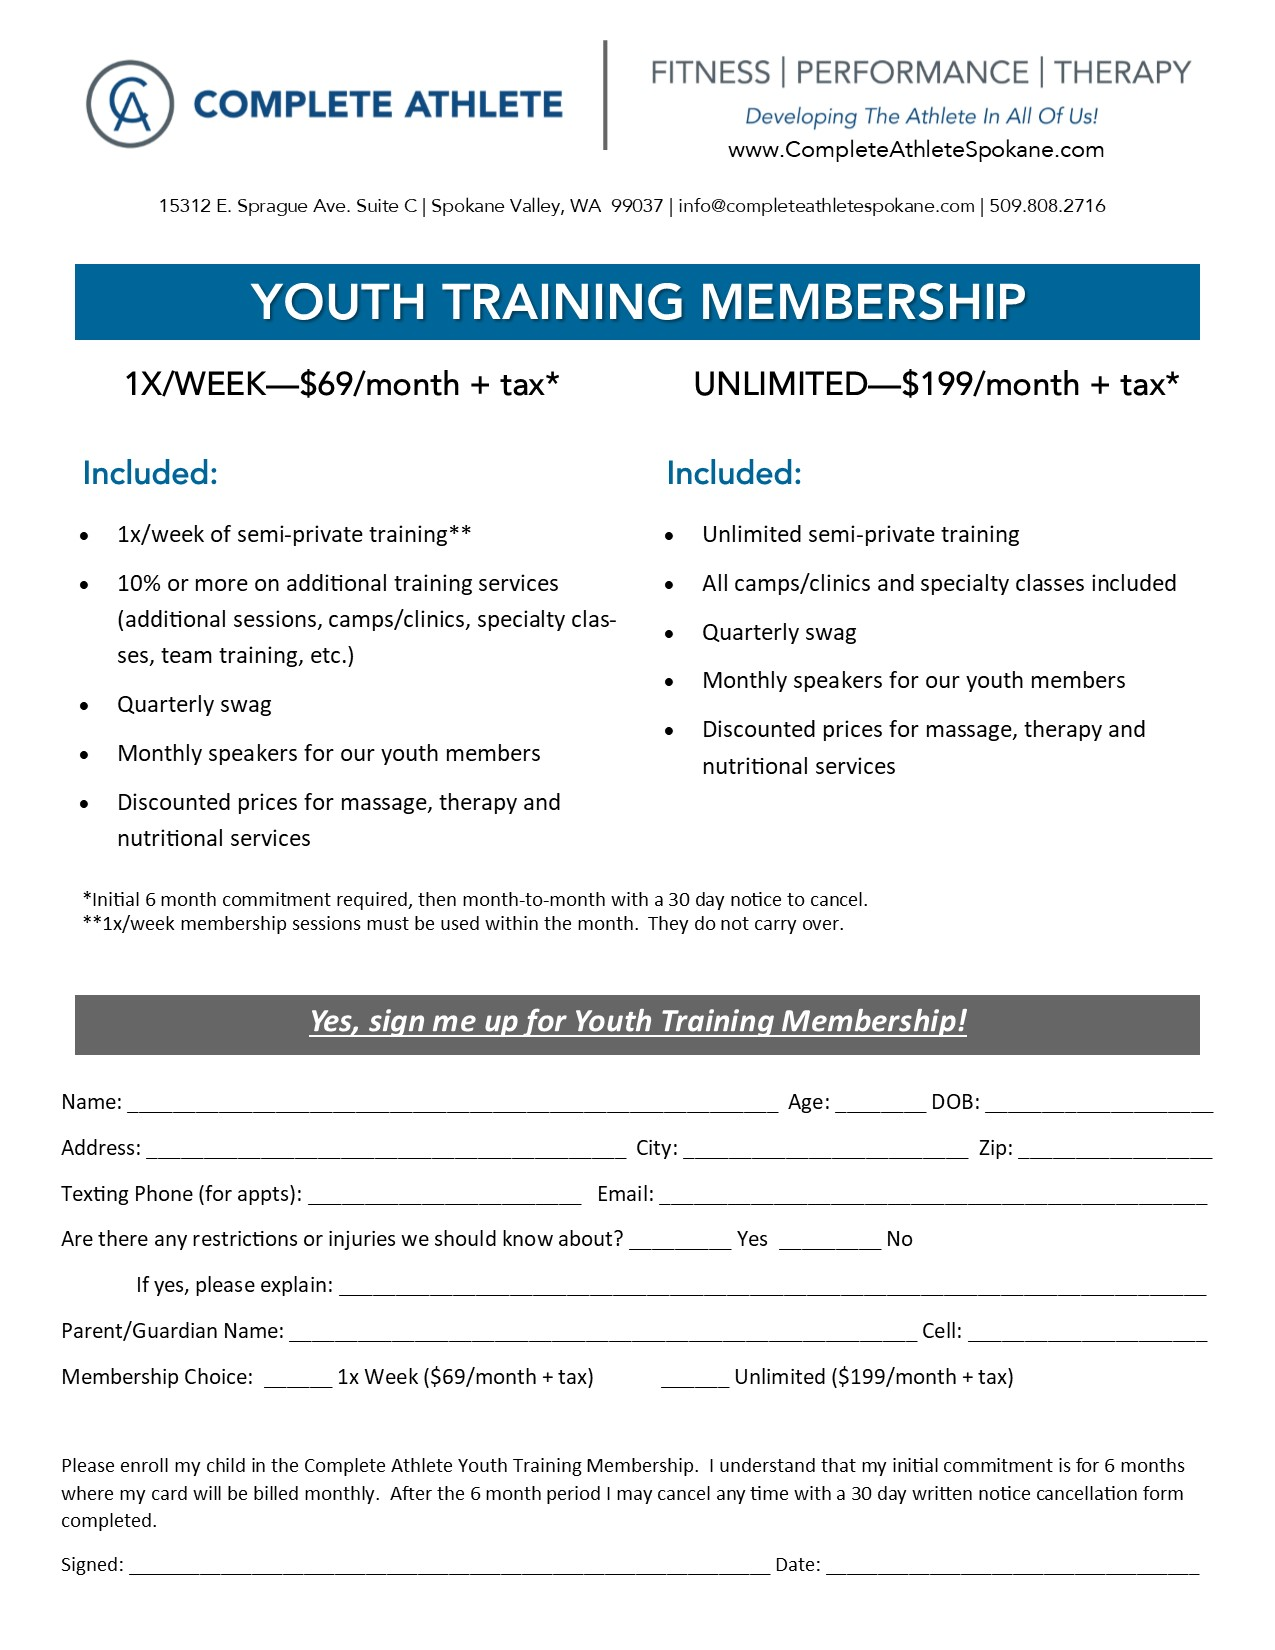 Youth Membership Flier.jpg